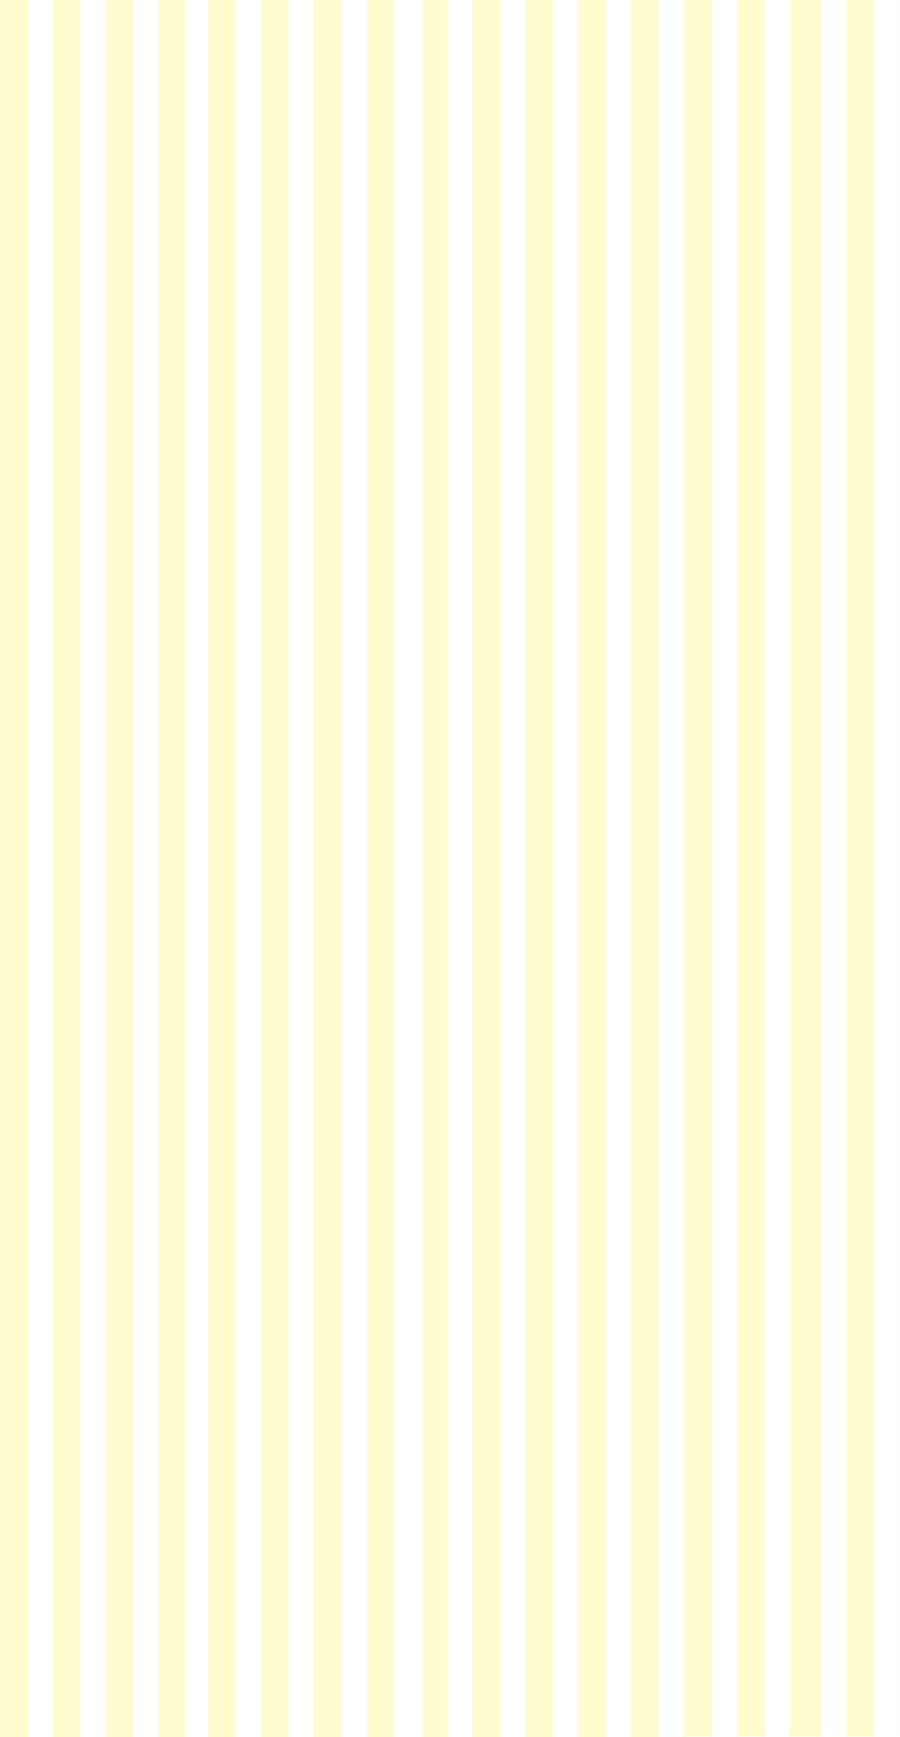 pastel yellow background - photo #41